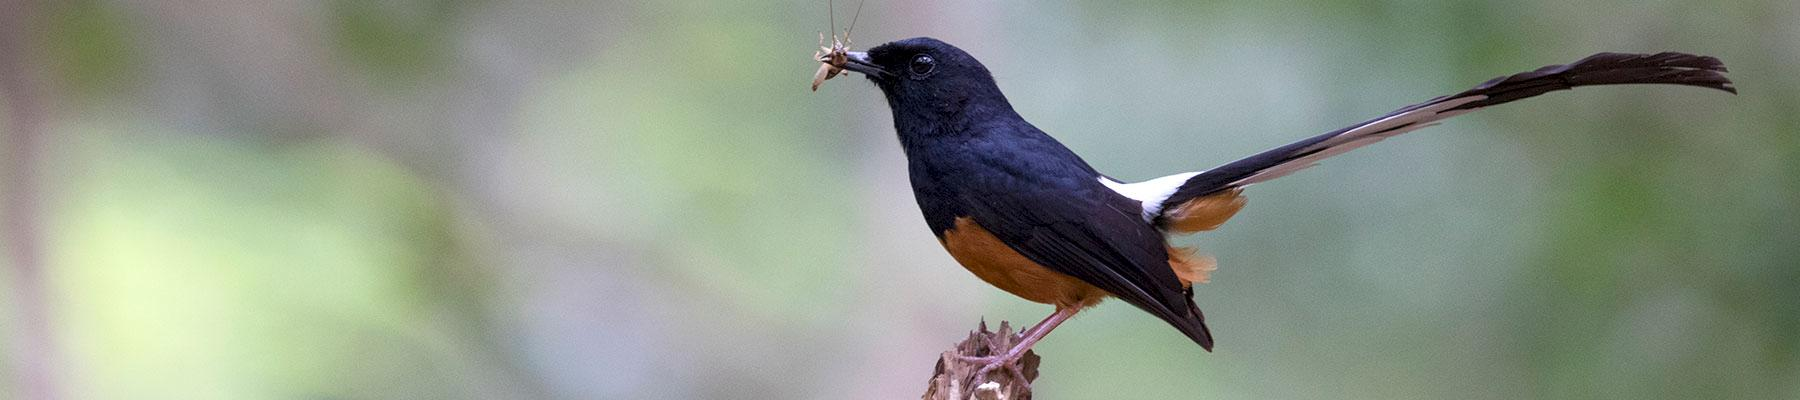 Popular songster: the White-rumped Shama is no longer protected although populations in Indonesia are plummetting © Danushka Senadheera (CC BY-NC-ND 2.0)